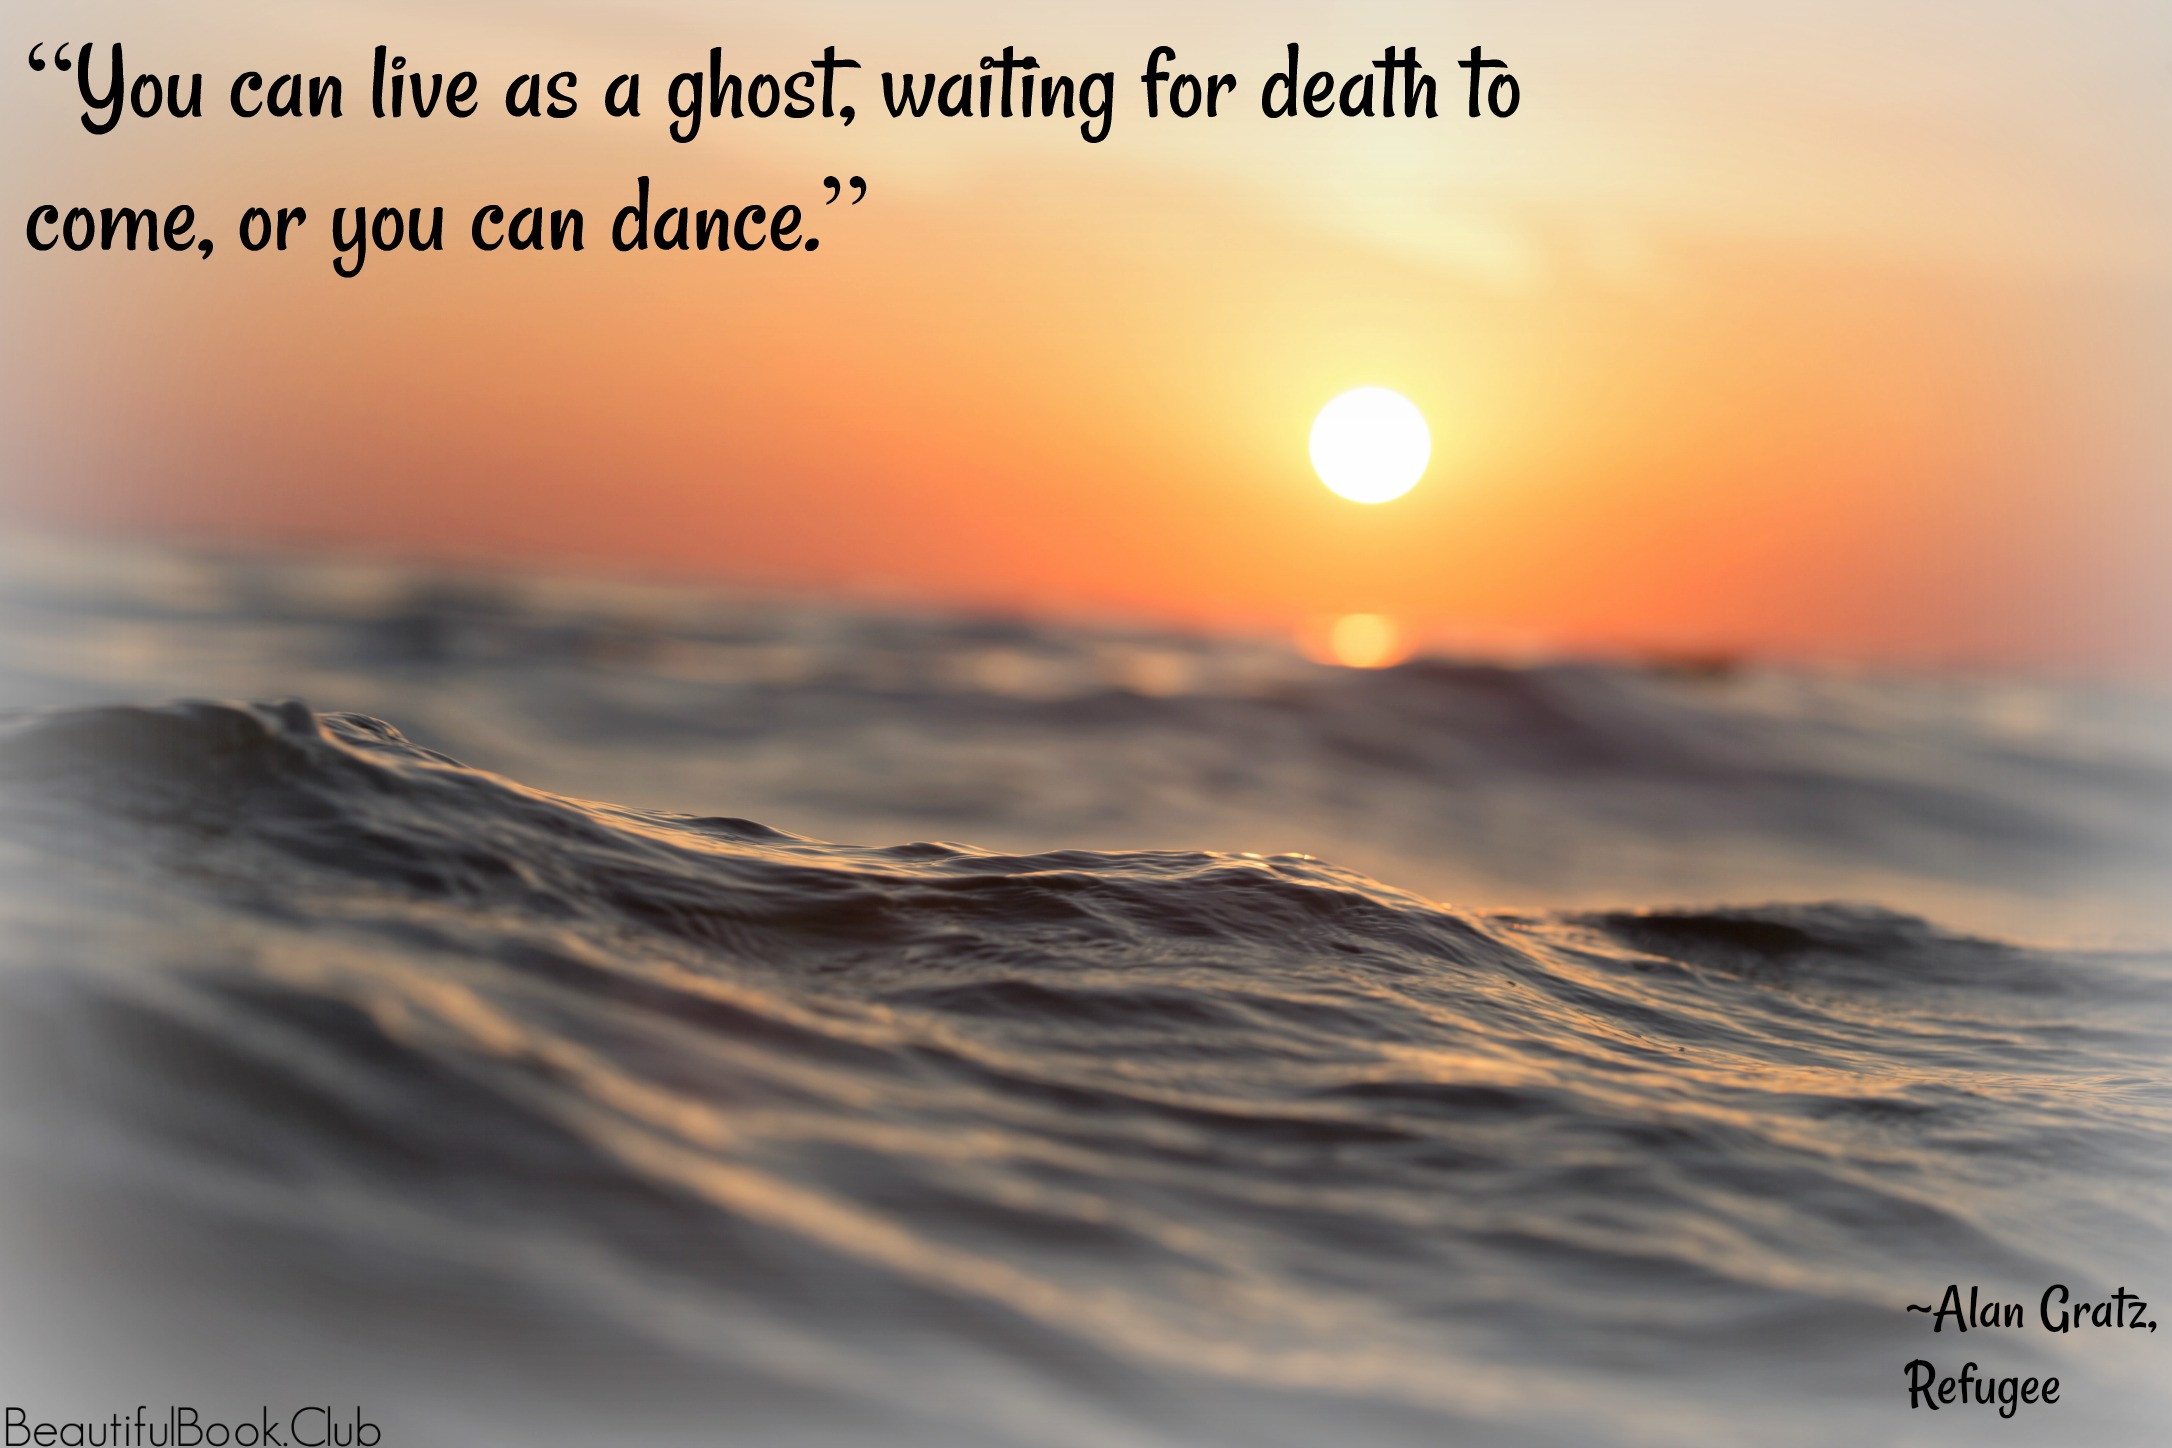 You can live as a ghost, waiting for death to come, or you can dance. _Alan Gratz, Refugee